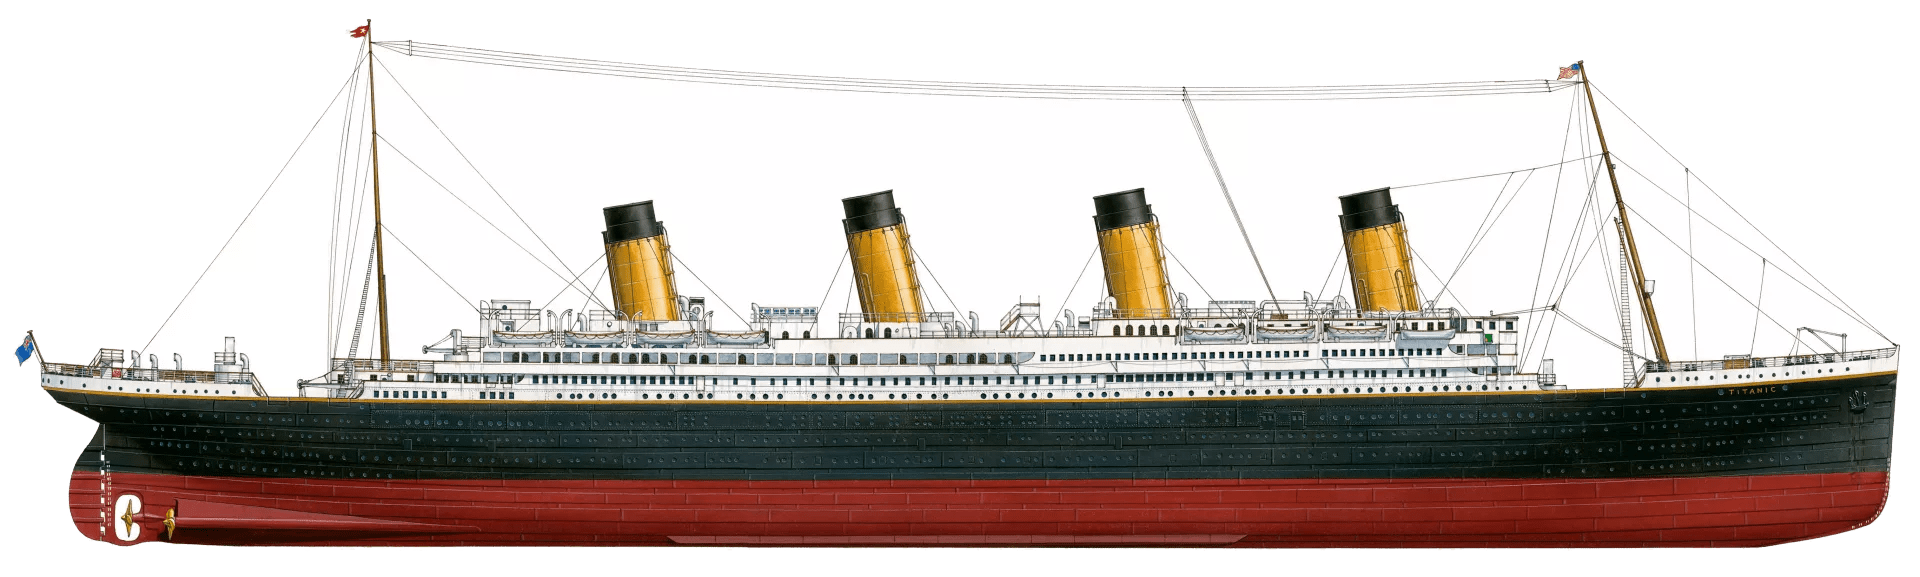 hight resolution of the titanic